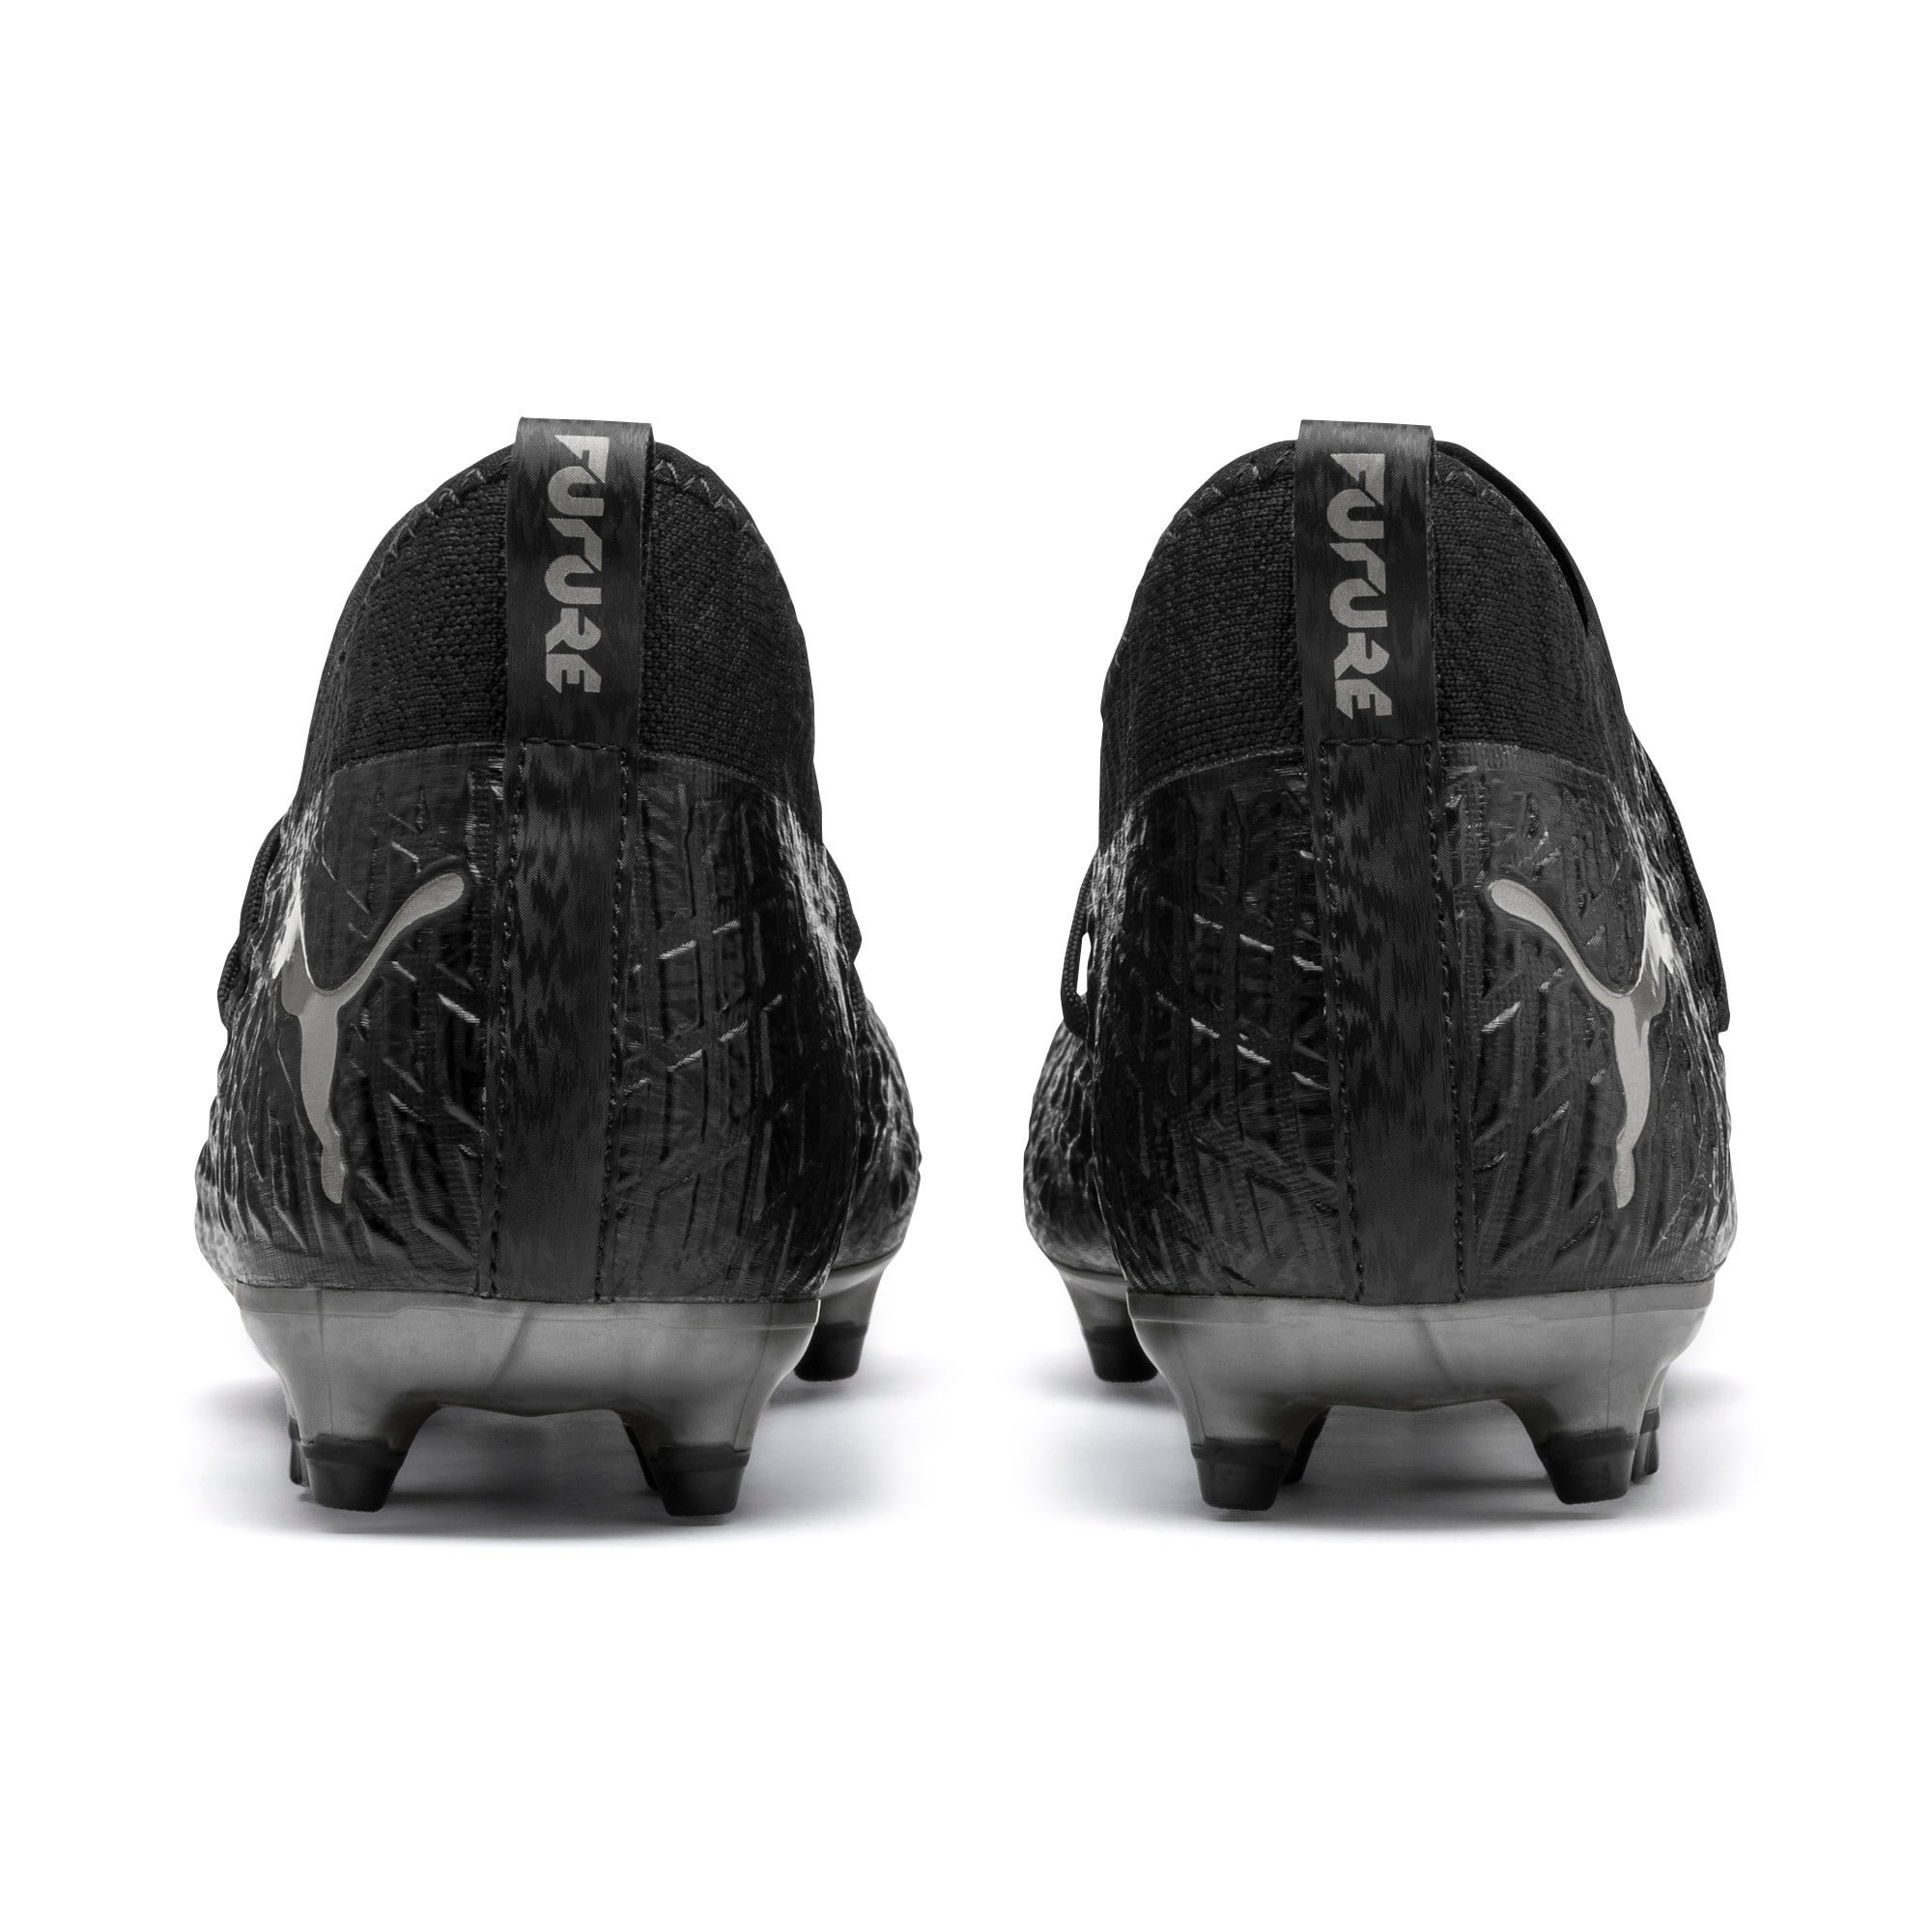 Thumbnail 4 of FUTURE 4.3 NETFIT FG/AG Men's Football Boots, Black-Black-Puma Aged Silver, medium